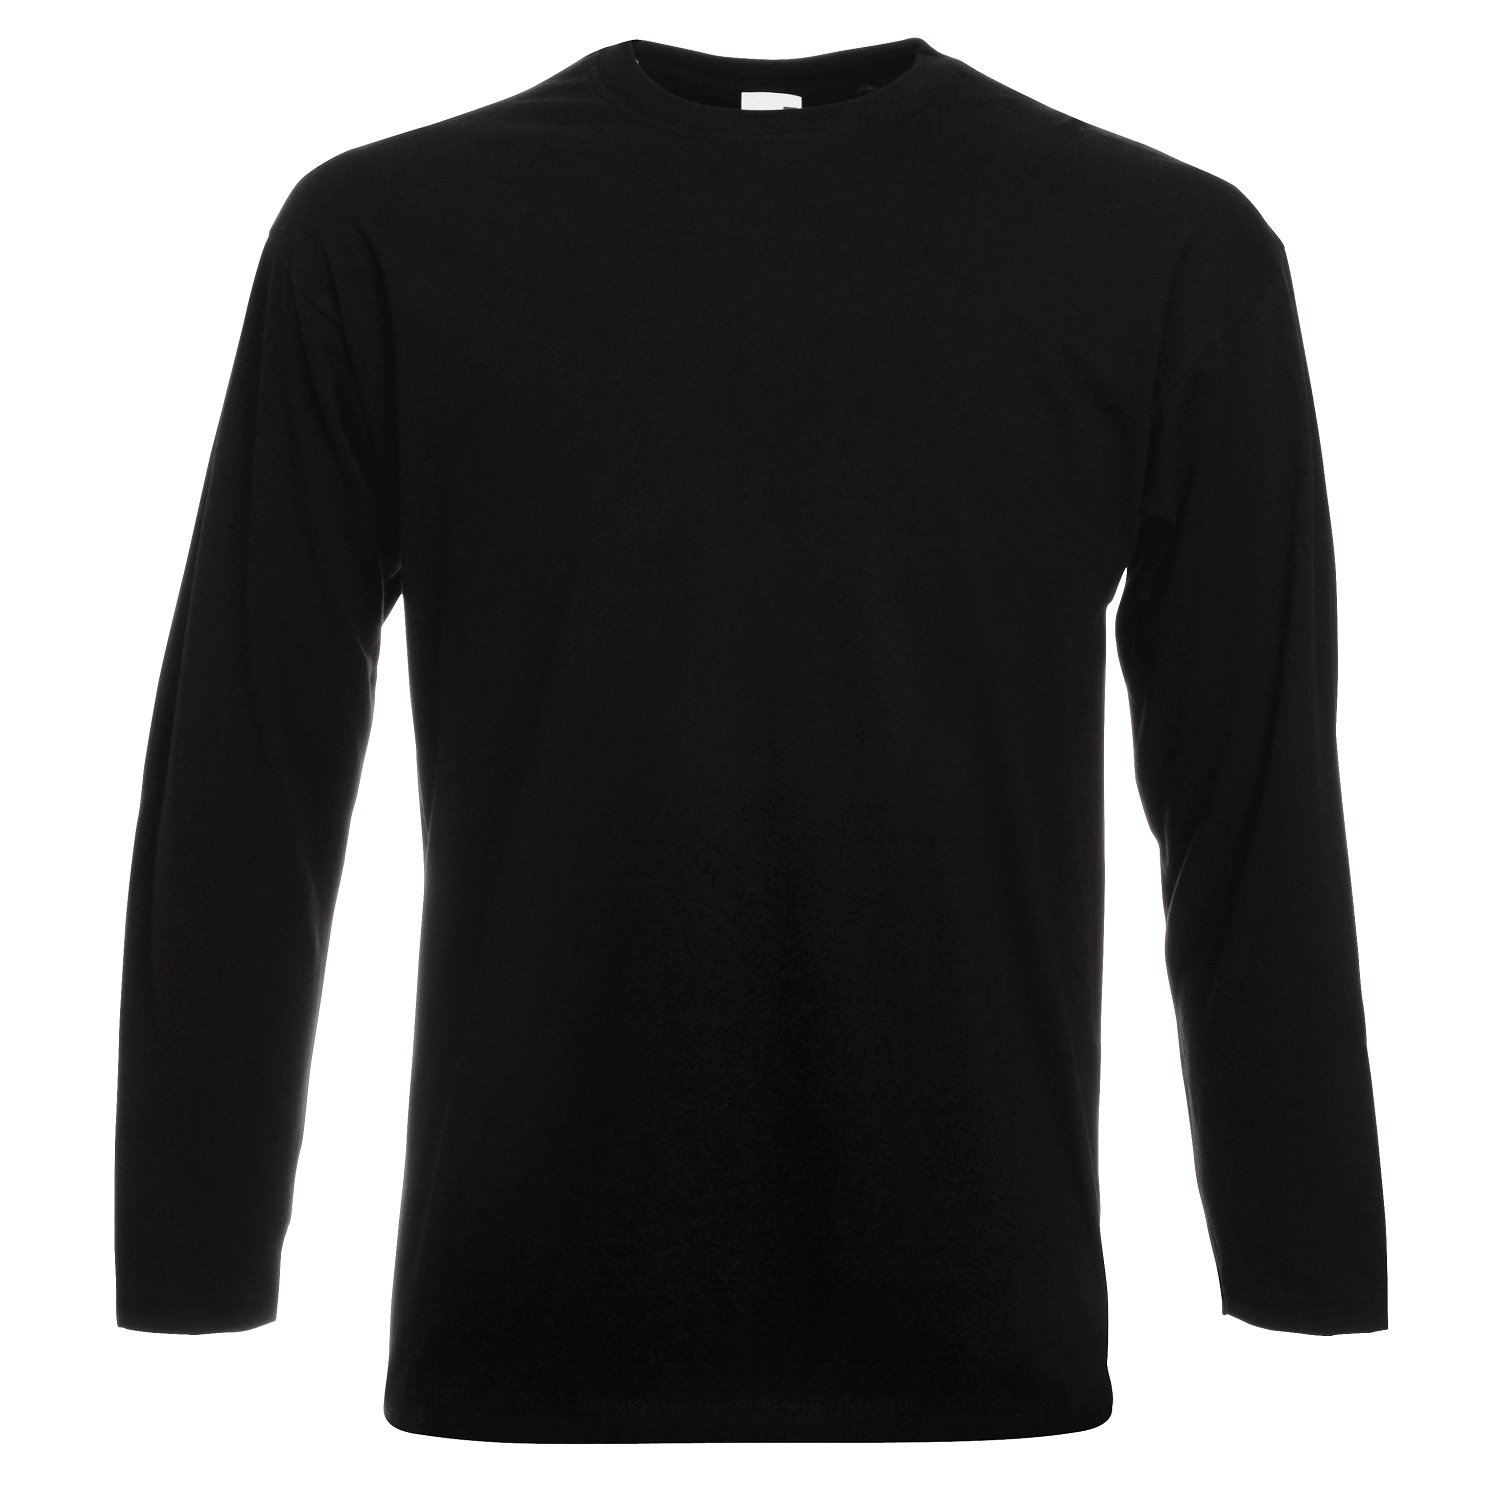 Fruit of the Loom 61-038-0 Long-Sleeved T-Shirt